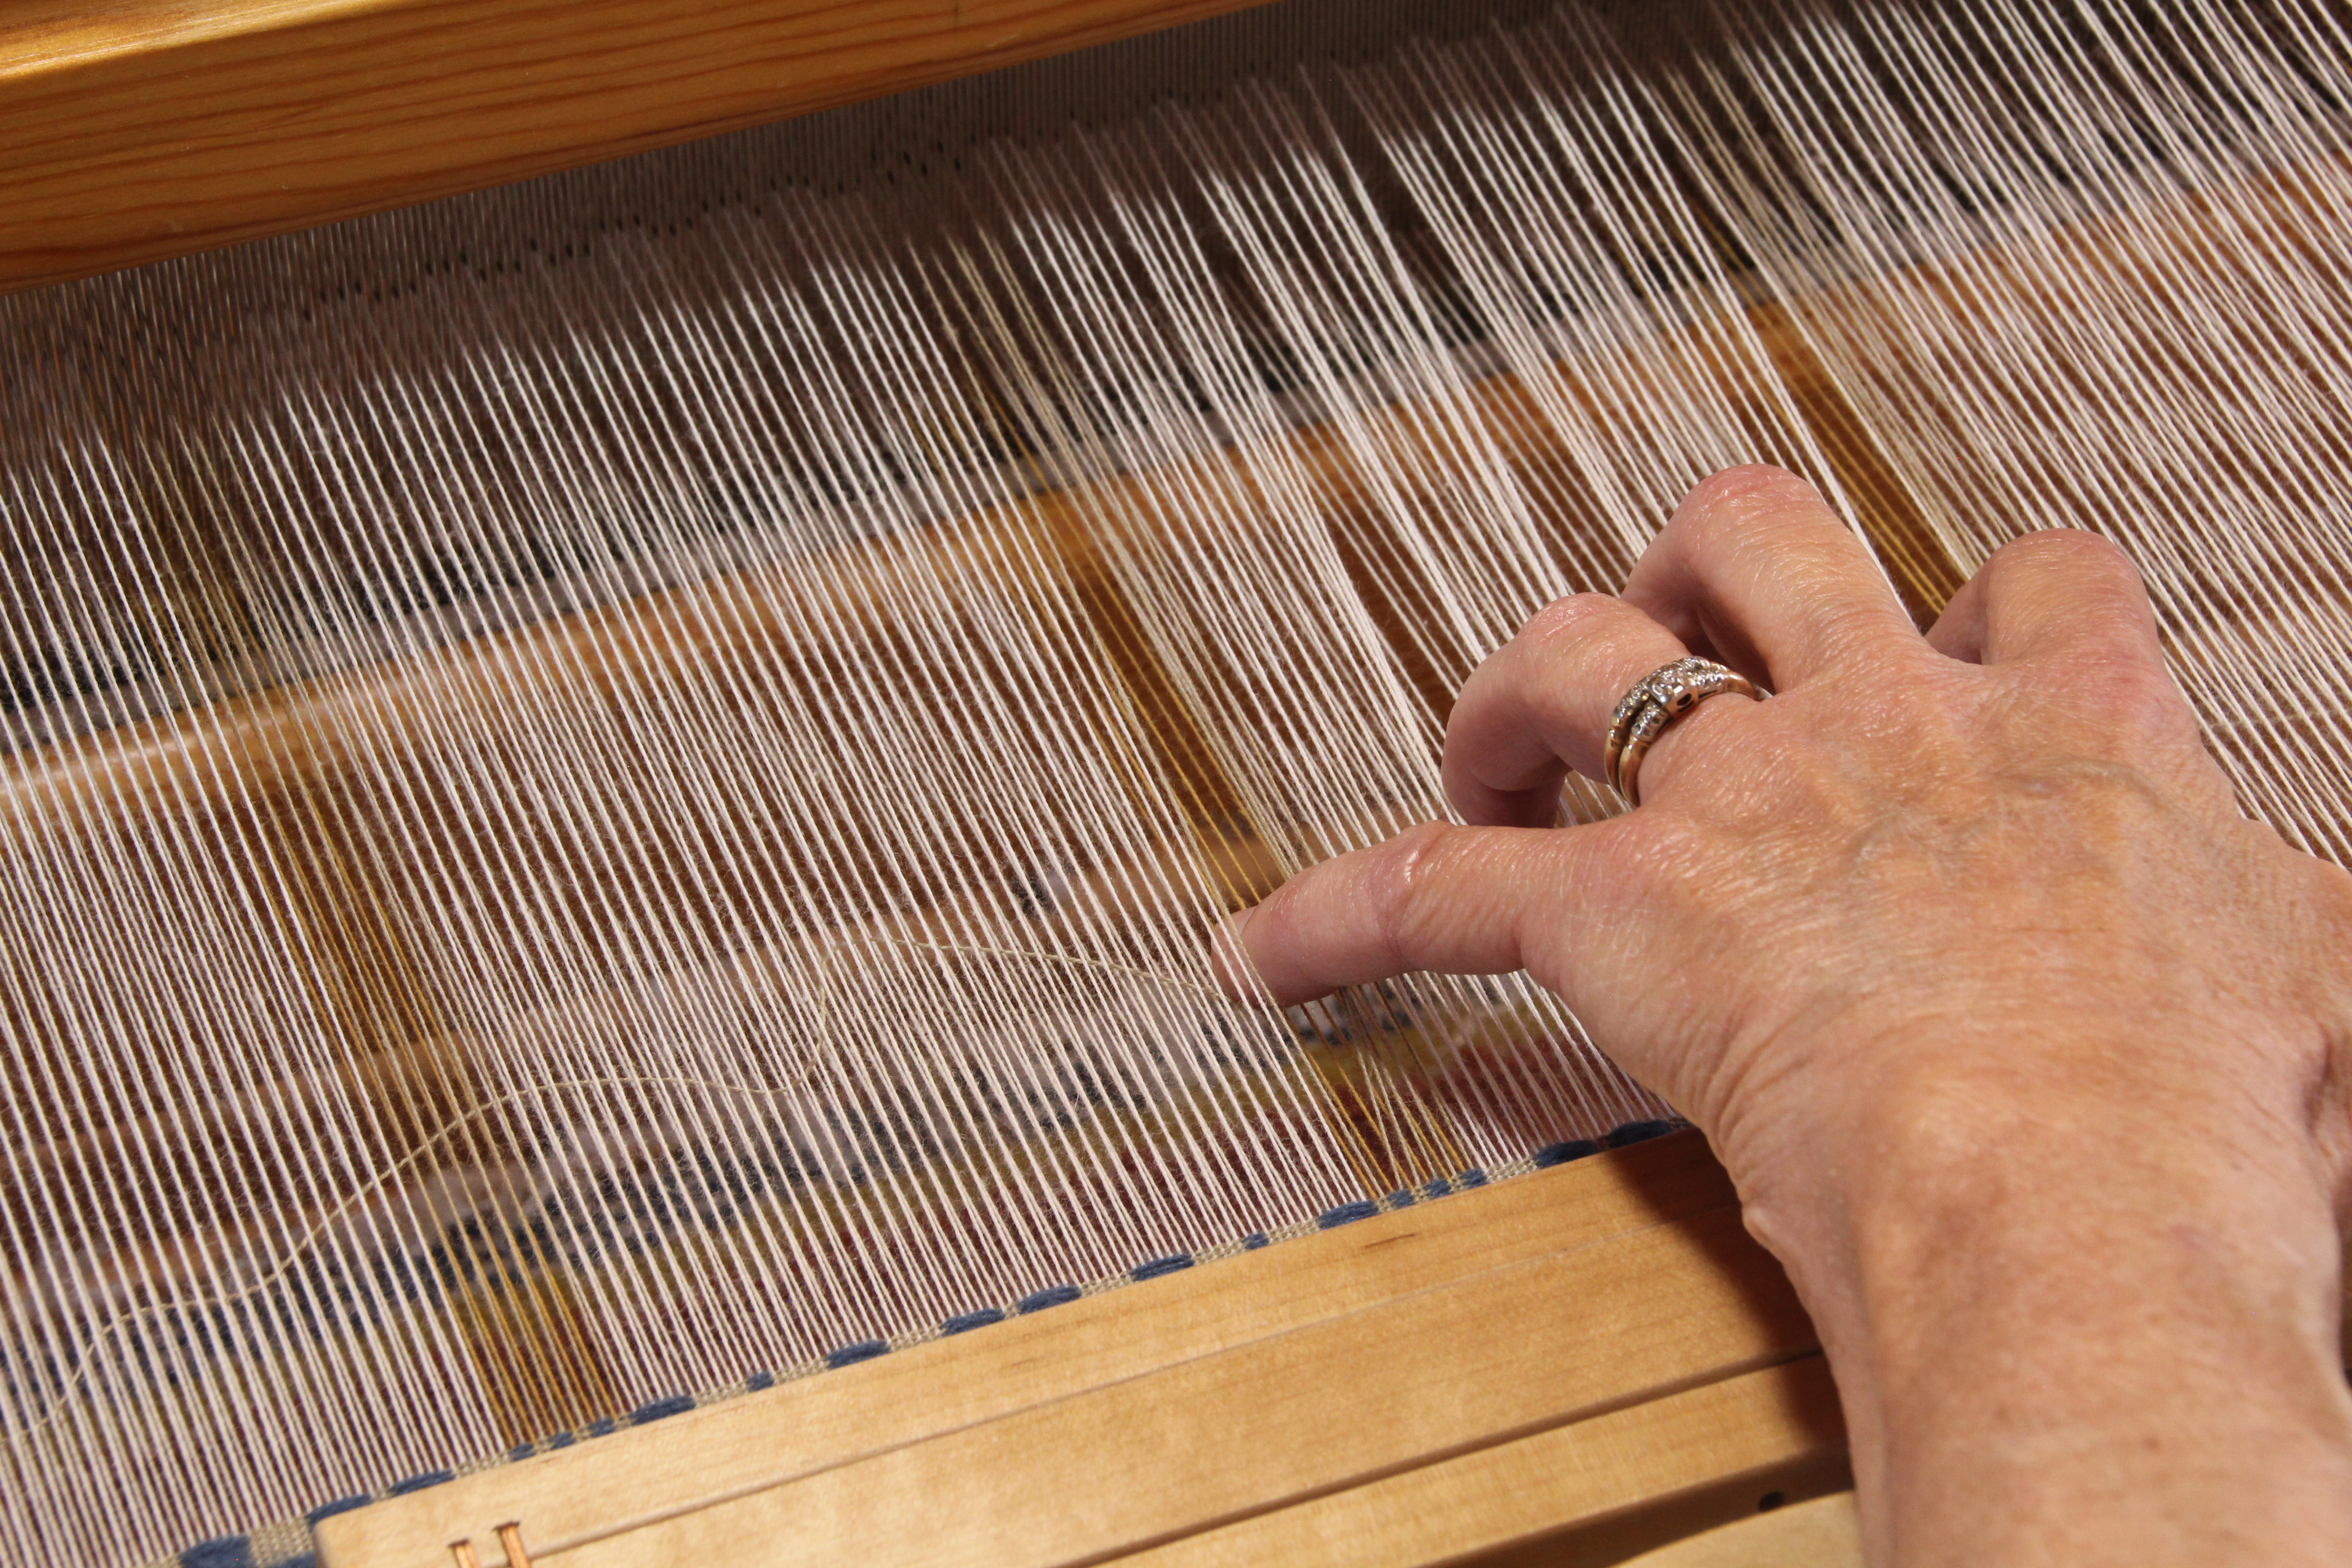 Weft rep how to.